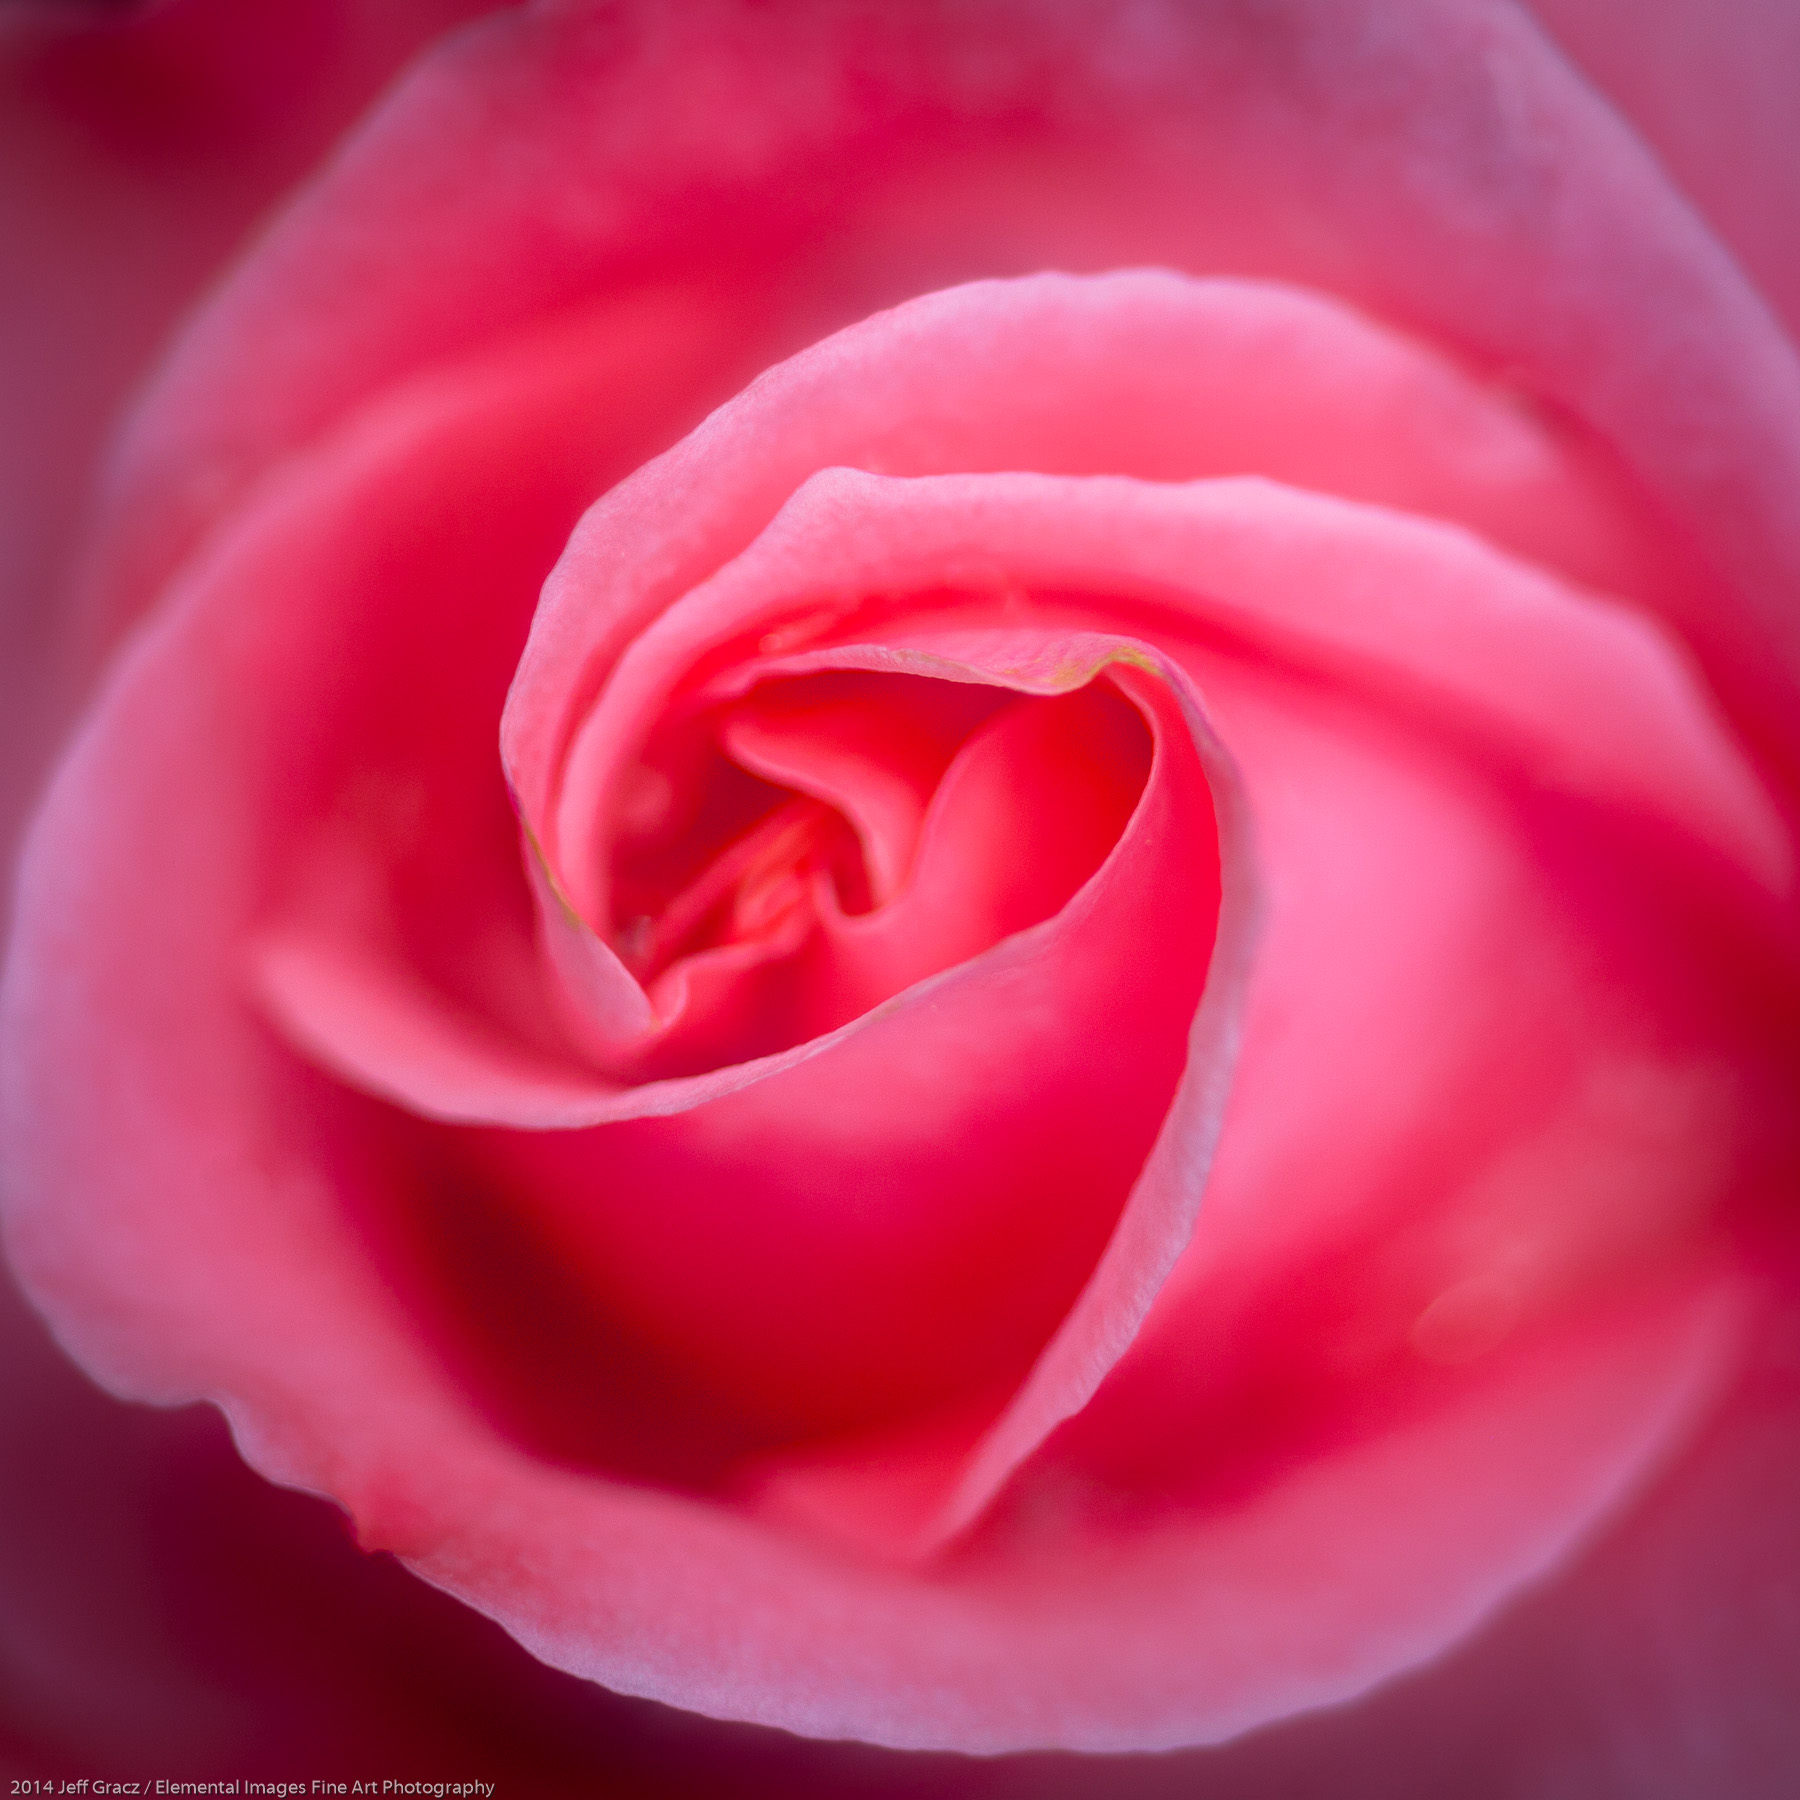 Roses LVI | Portland | OR | USA - © 2014 Jeff Gracz / Elemental Images Fine Art Photography - All Rights Reserved Worldwide